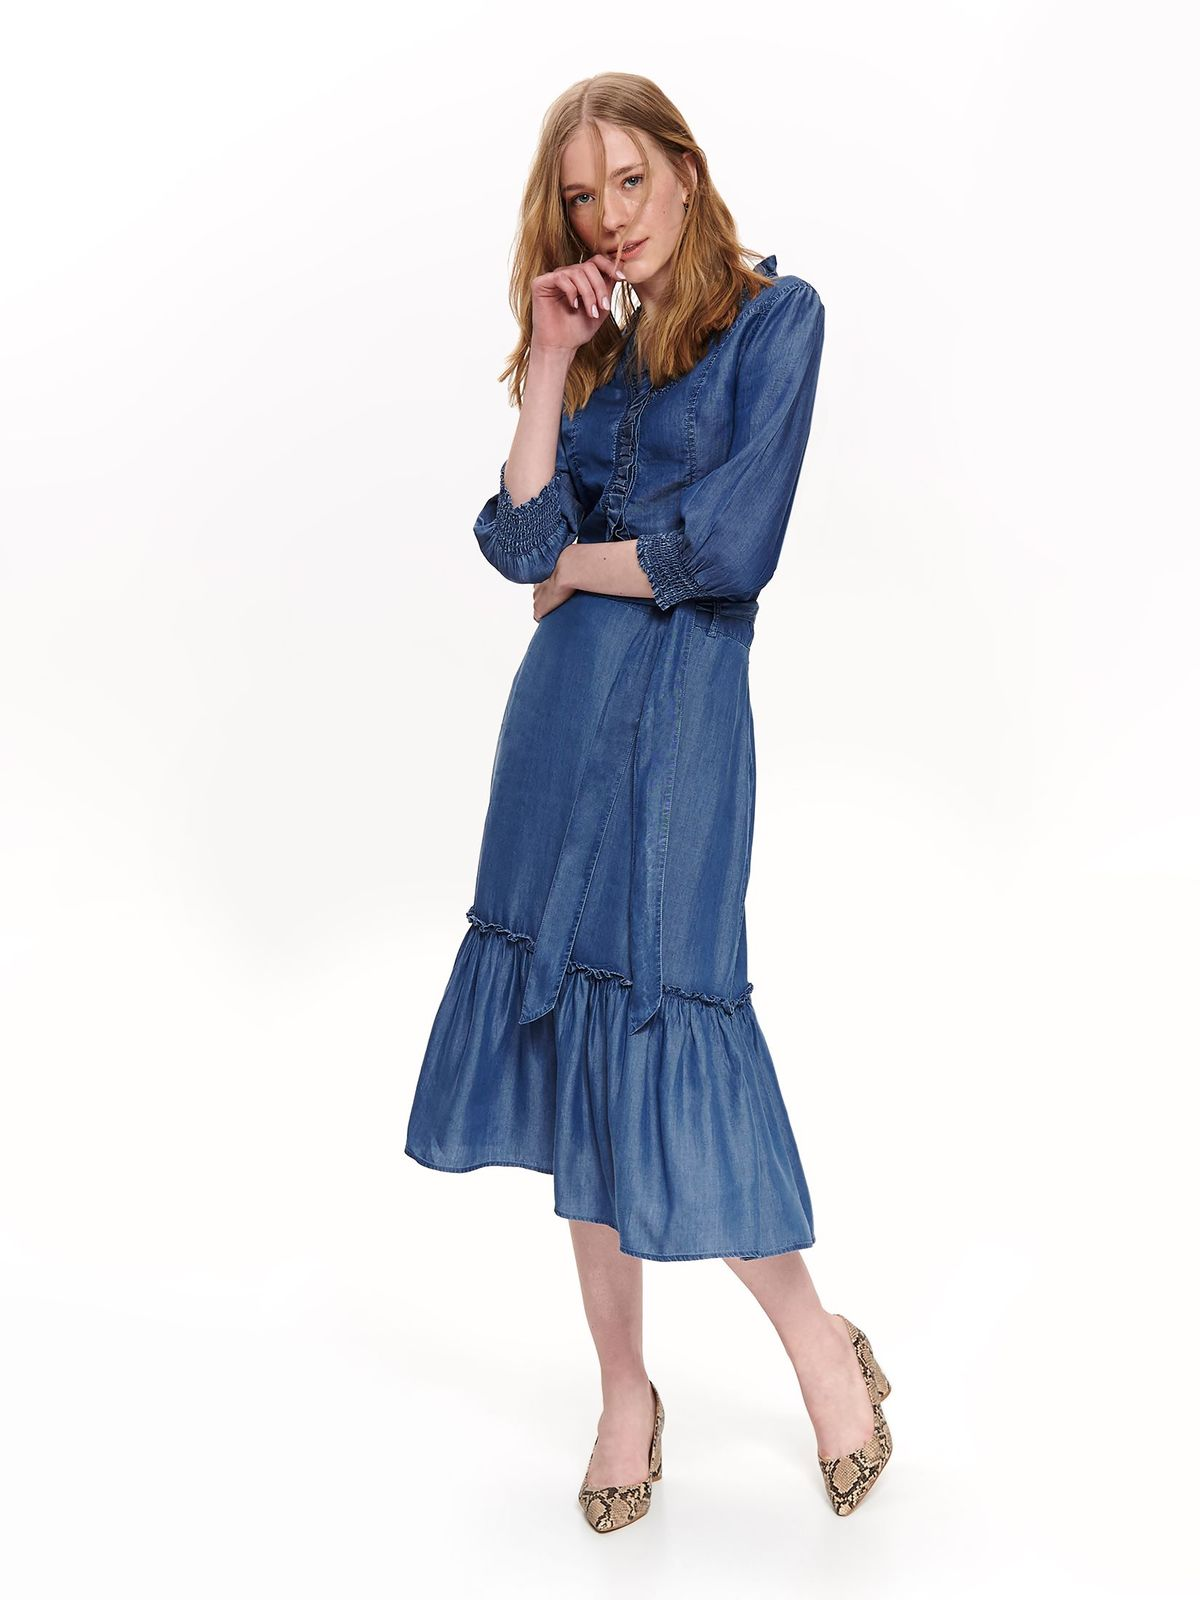 Top Secret blue casual cloche skirt with ruffle details accessorized with tied waistband